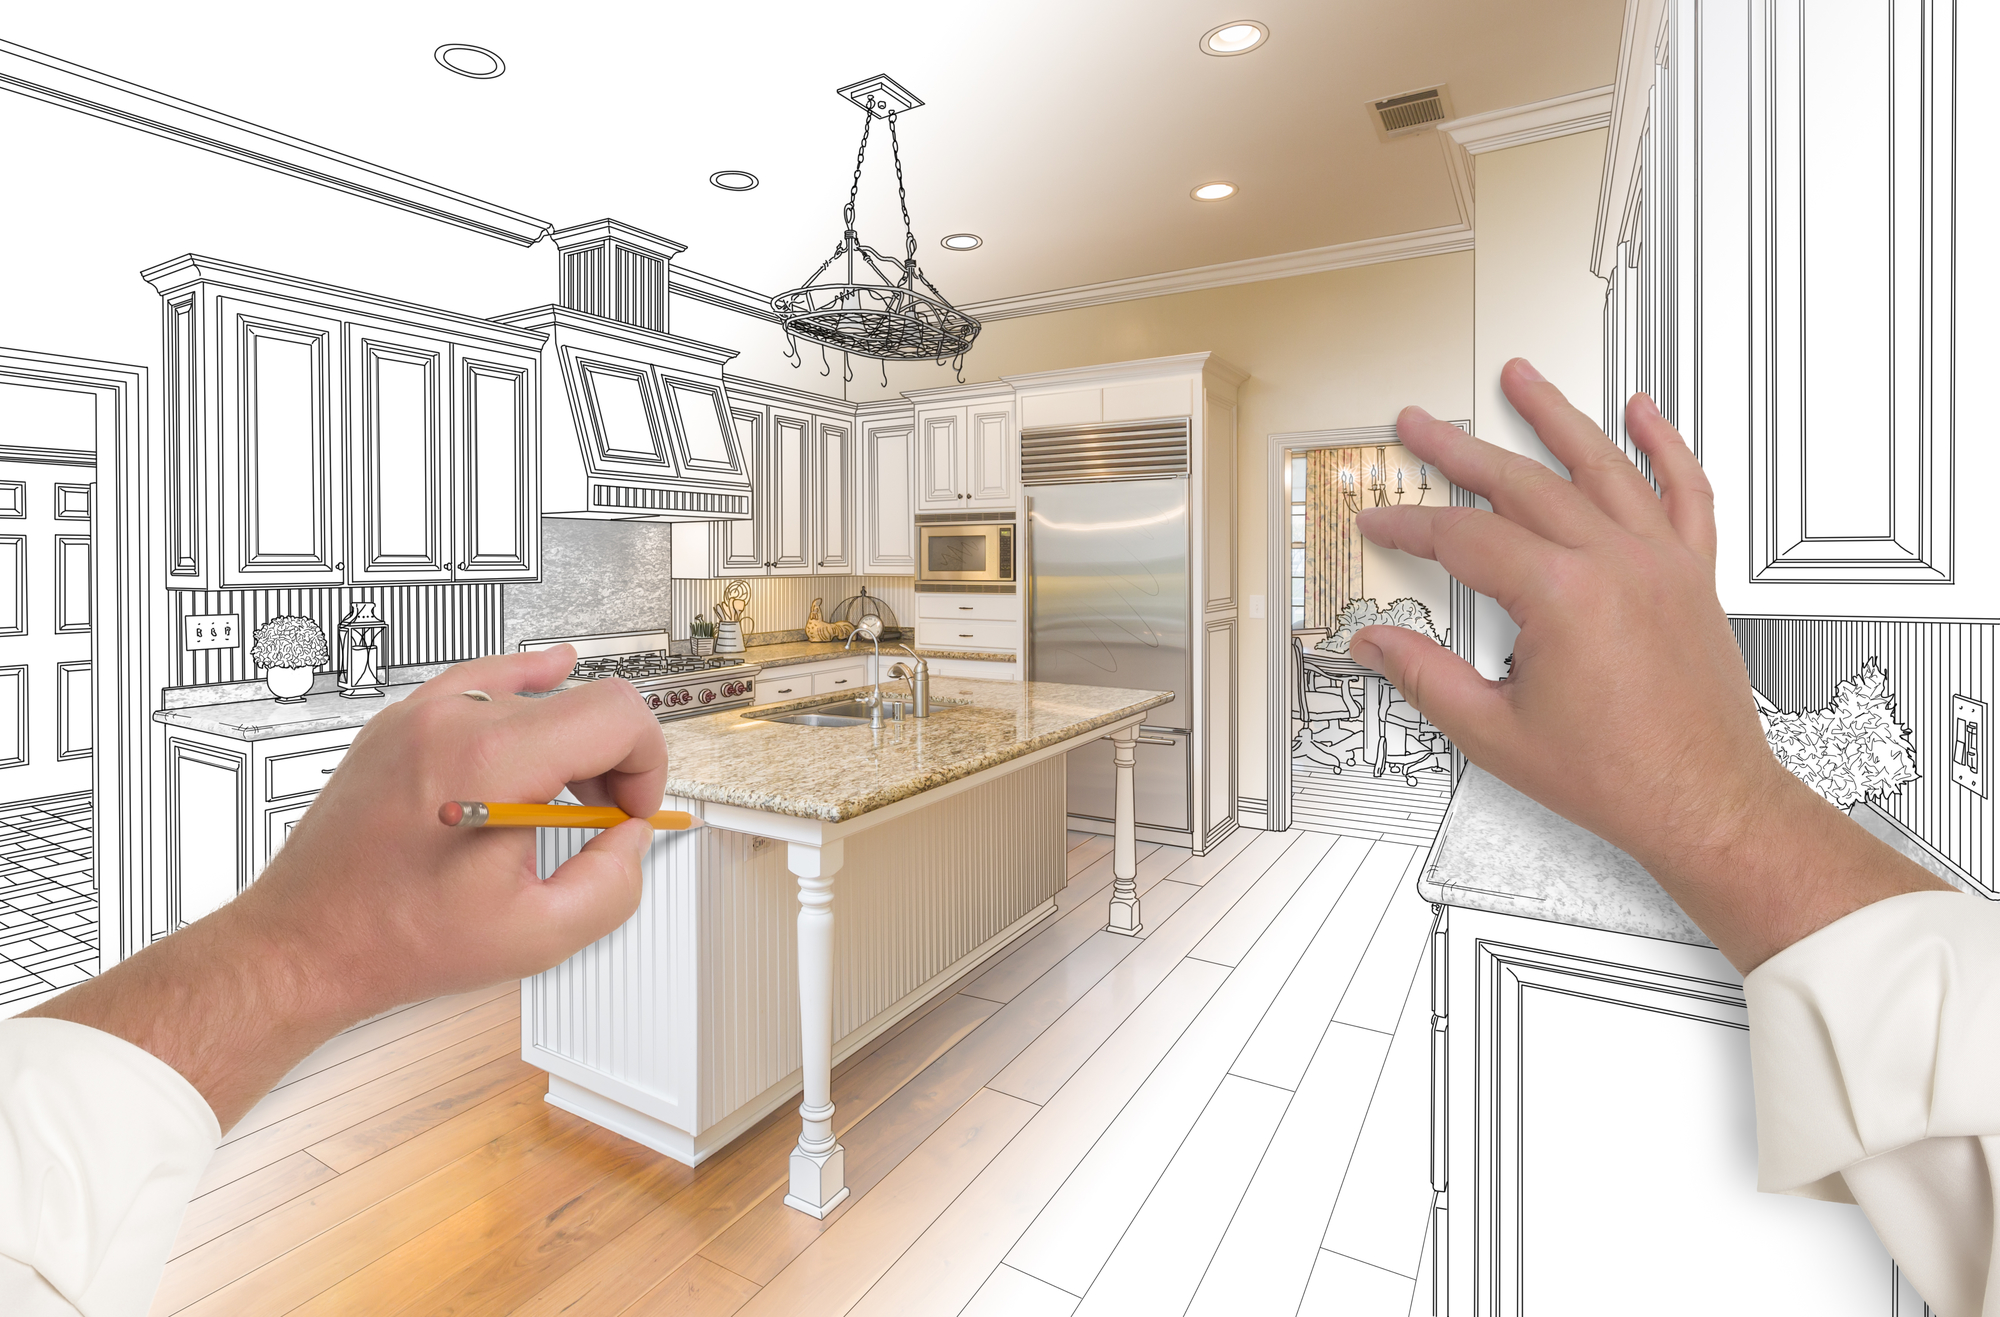 Services - Let's get started building your dream home, addition, or remodel!Call us today to book your free consultation.